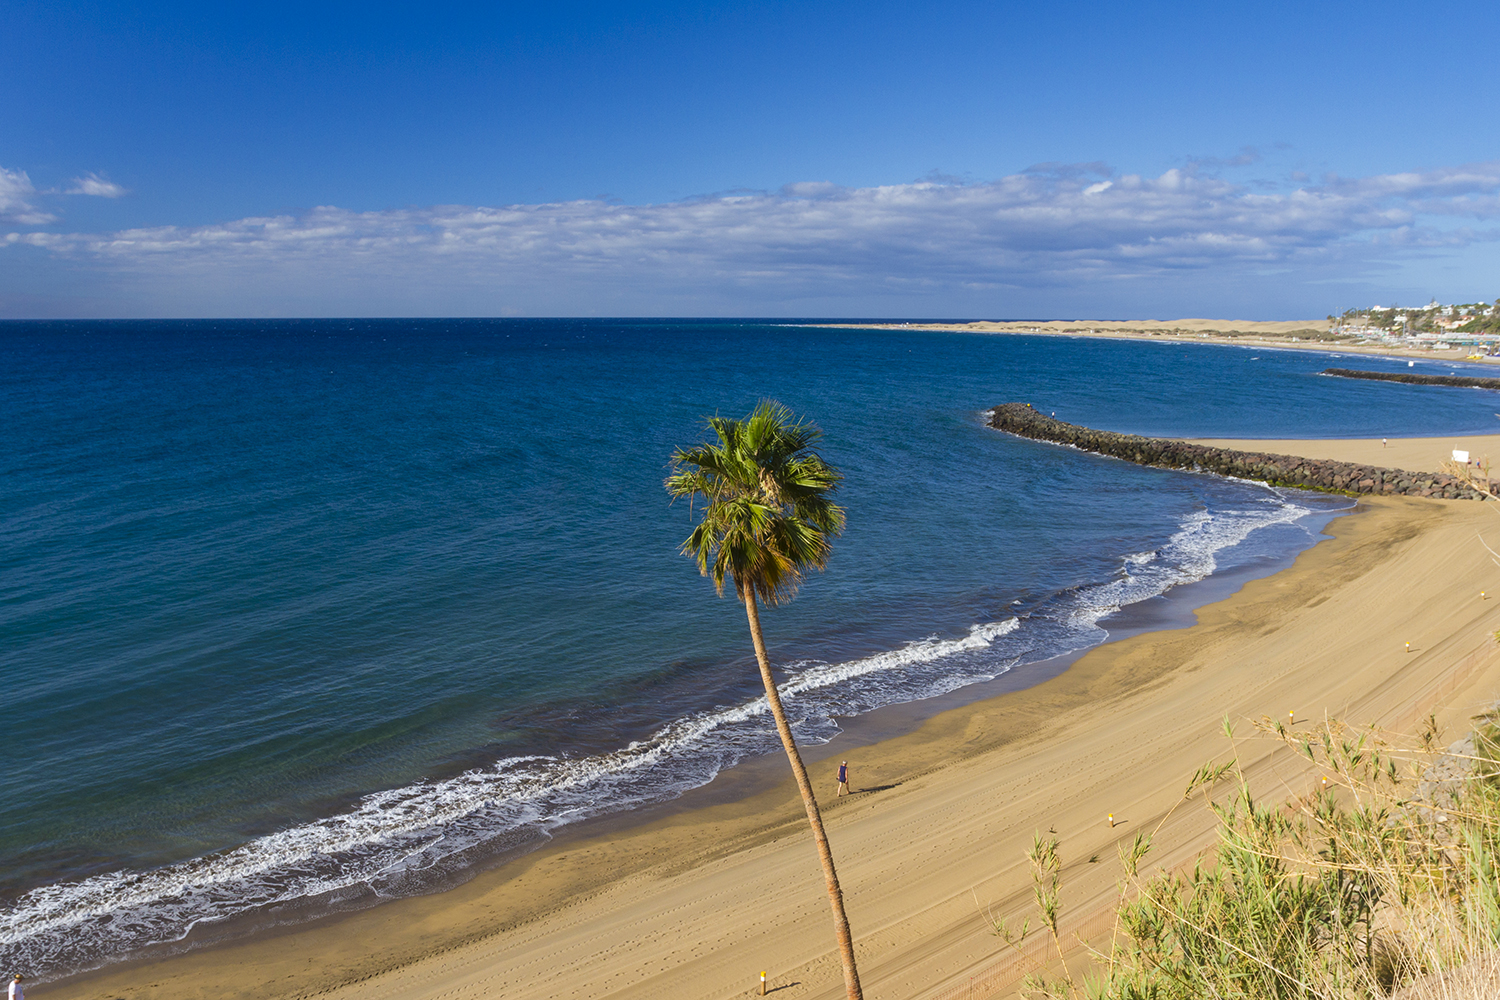 El Cochino beach in south Gran Canaria